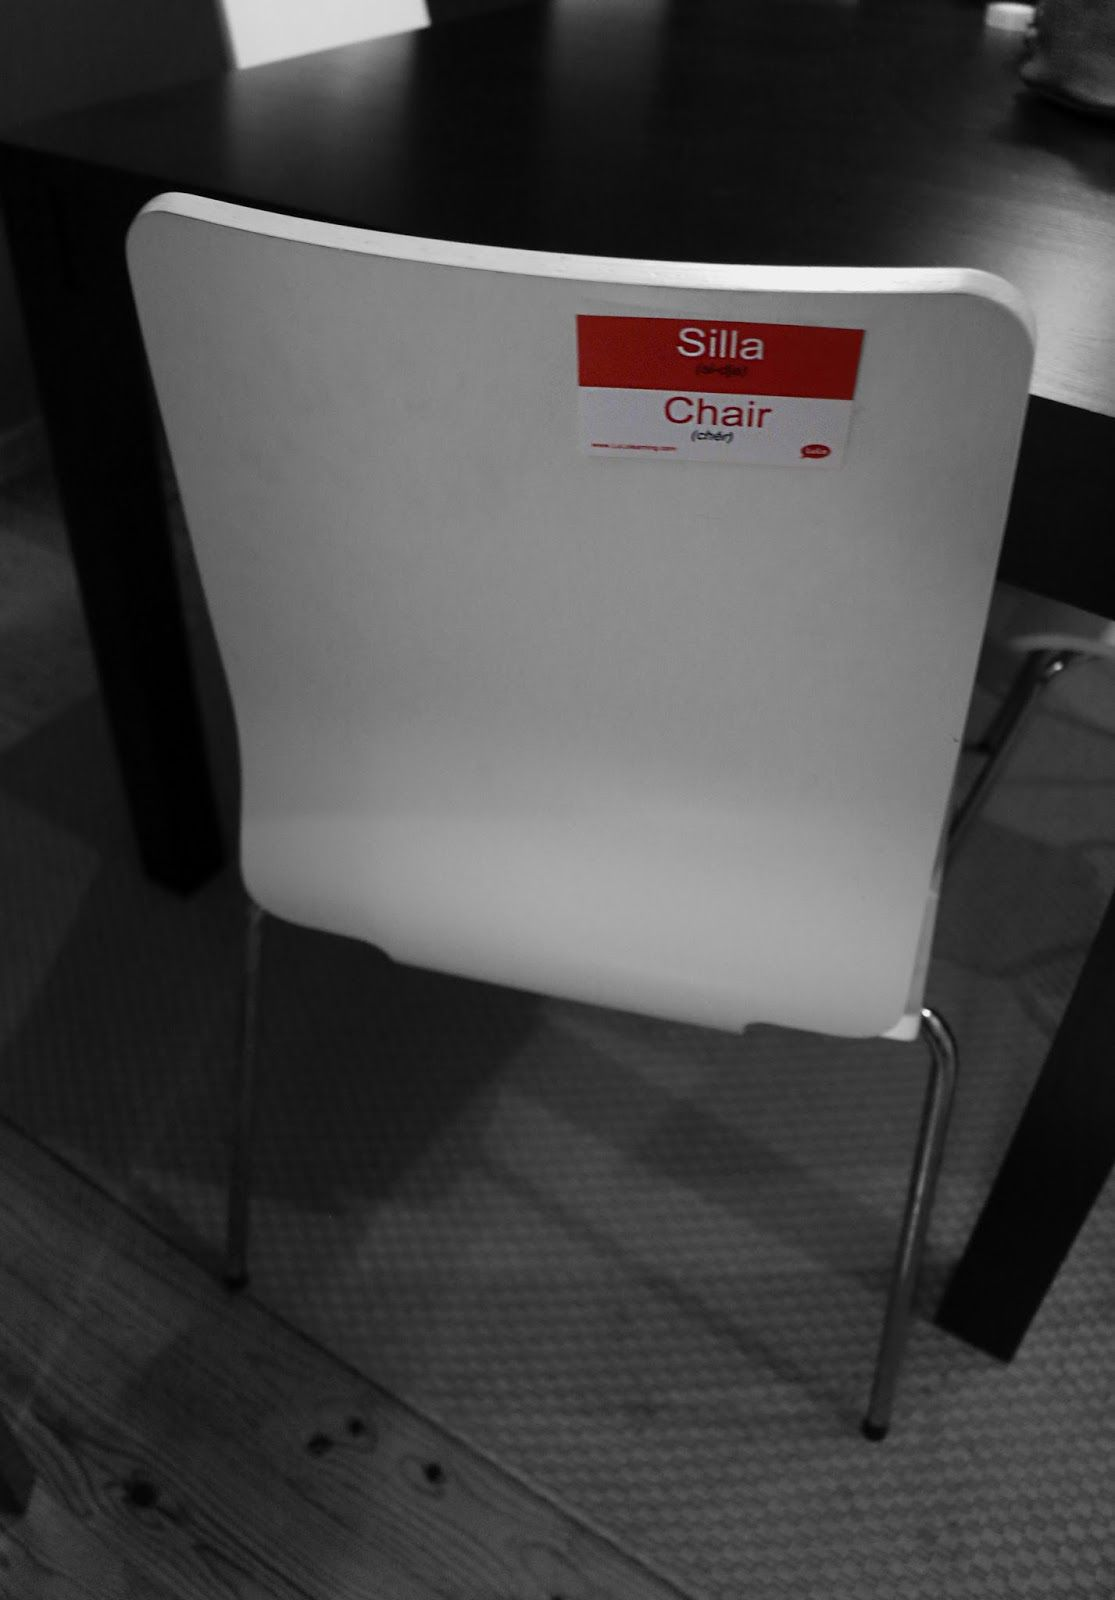 Silla En Ingles Chair In Spanish